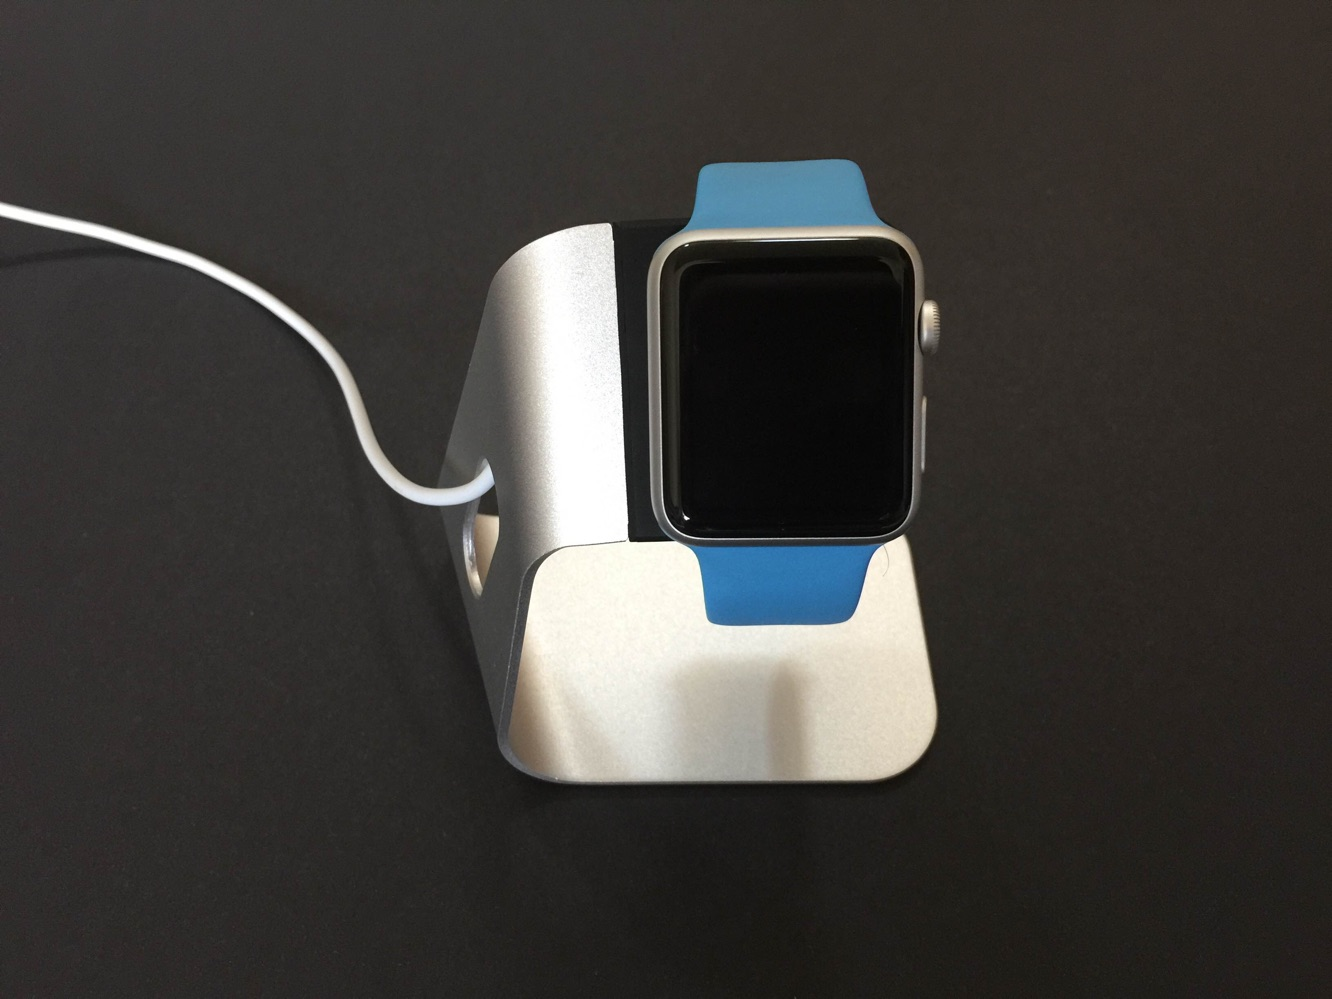 Review: Spigen Apple Watch Stand S330